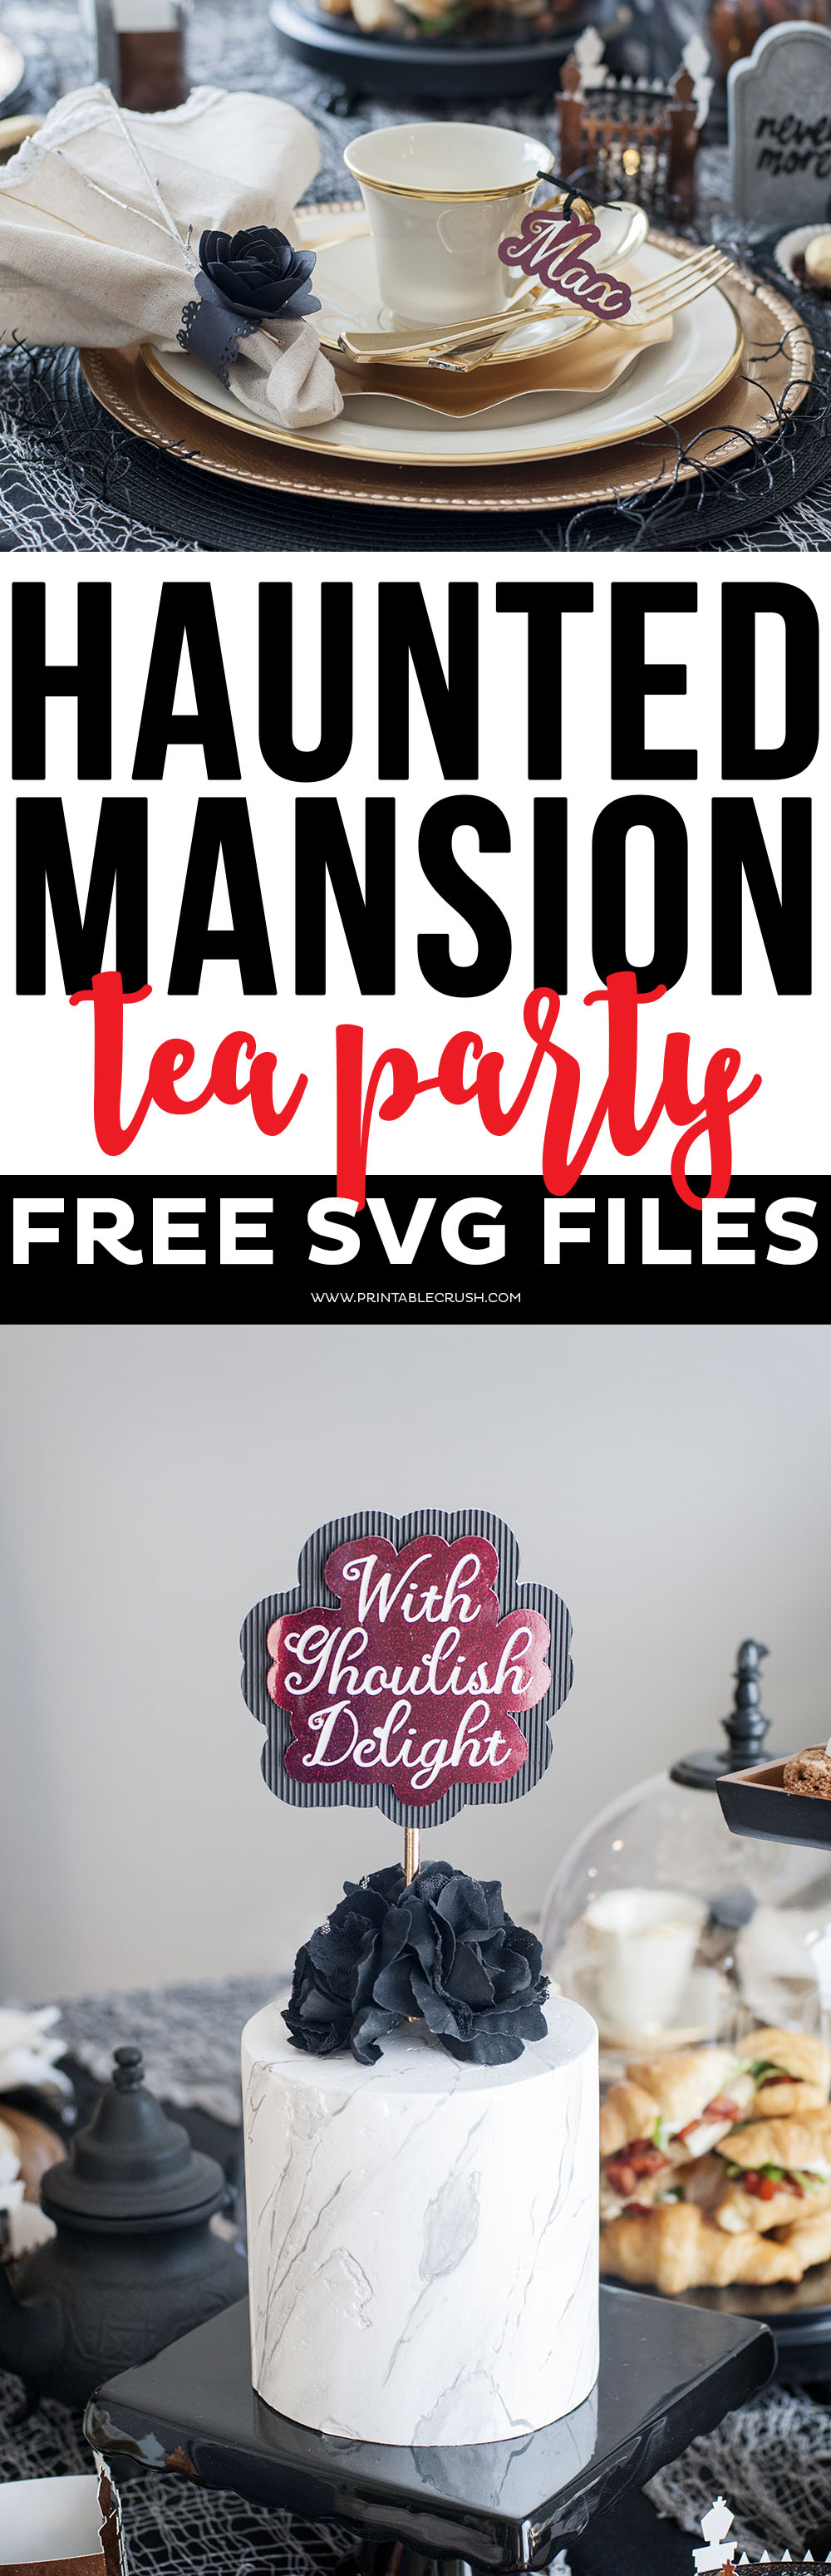 Download theseFREE Haunted Mansion Tea Party SVG Files to use for your next party idea, or for your Halloween Decor! Includes 4 spooky Halloween designs!